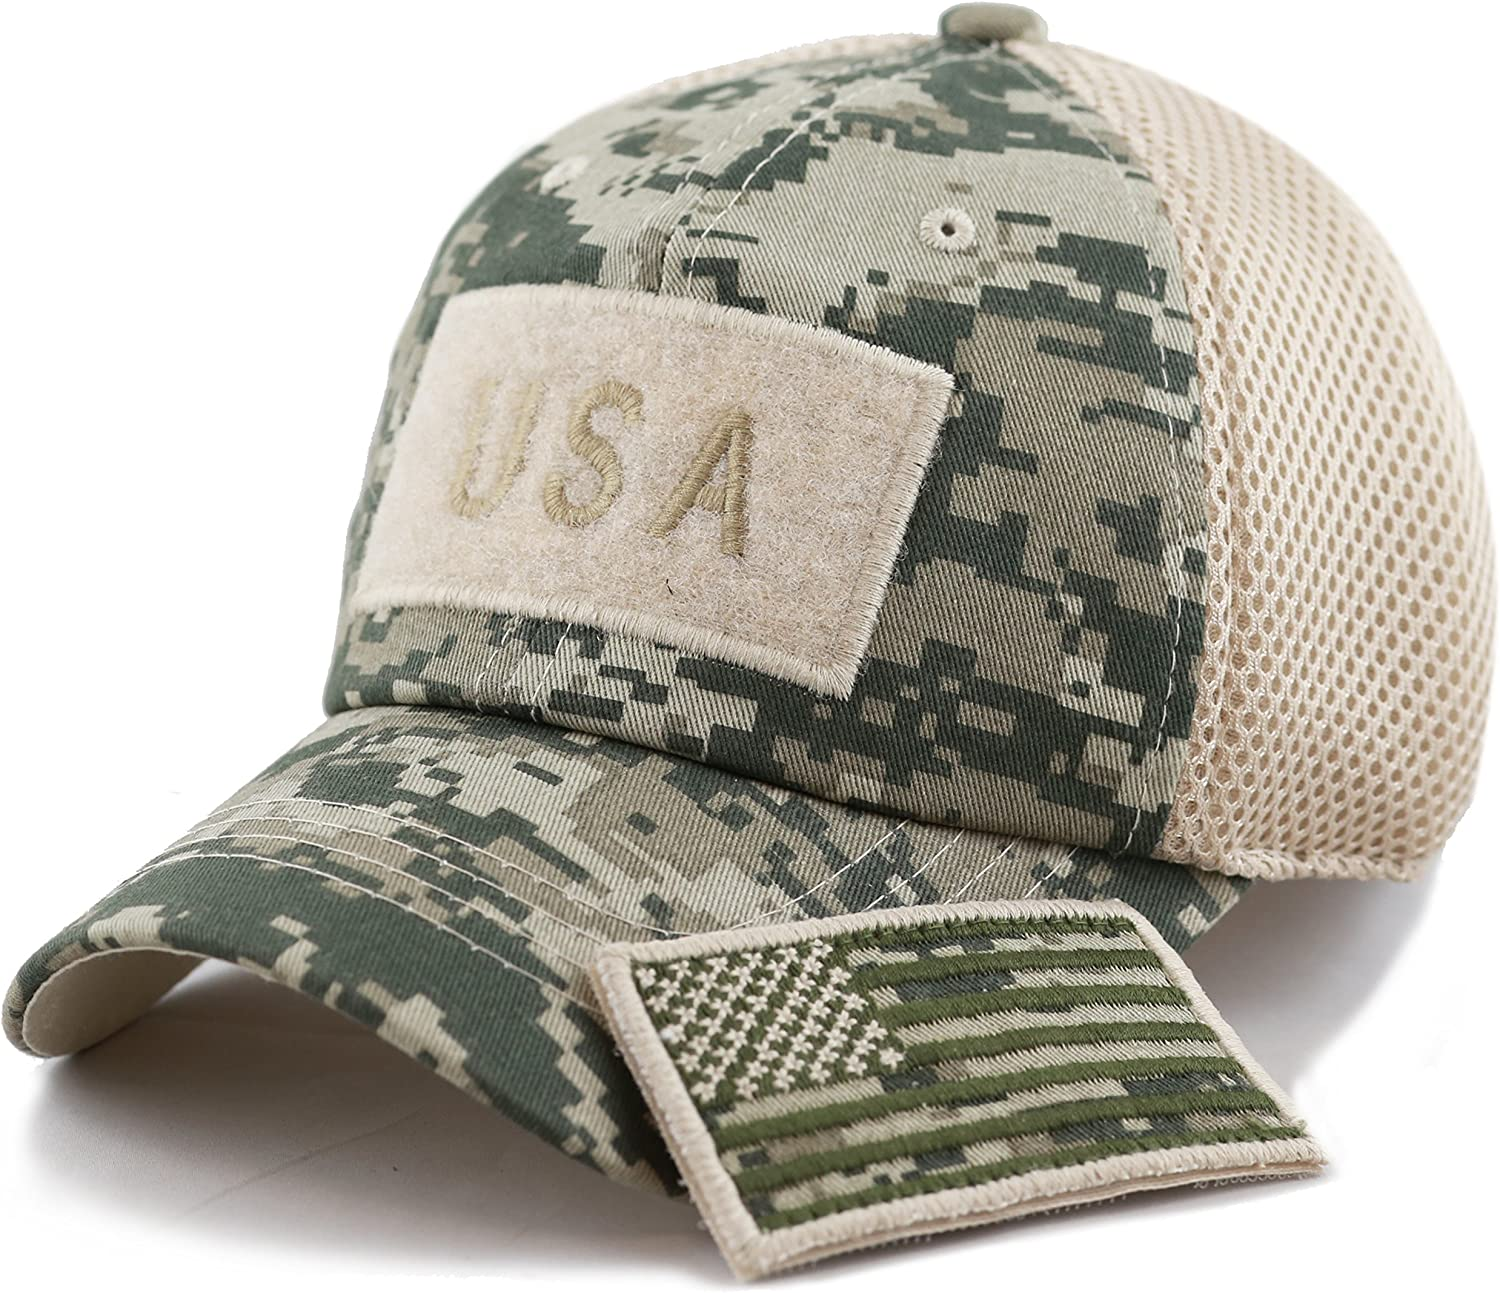 The Hat Depot Cotton & Pigment Low Profile Tactical Operator USA Flag Patch Military Army Cap